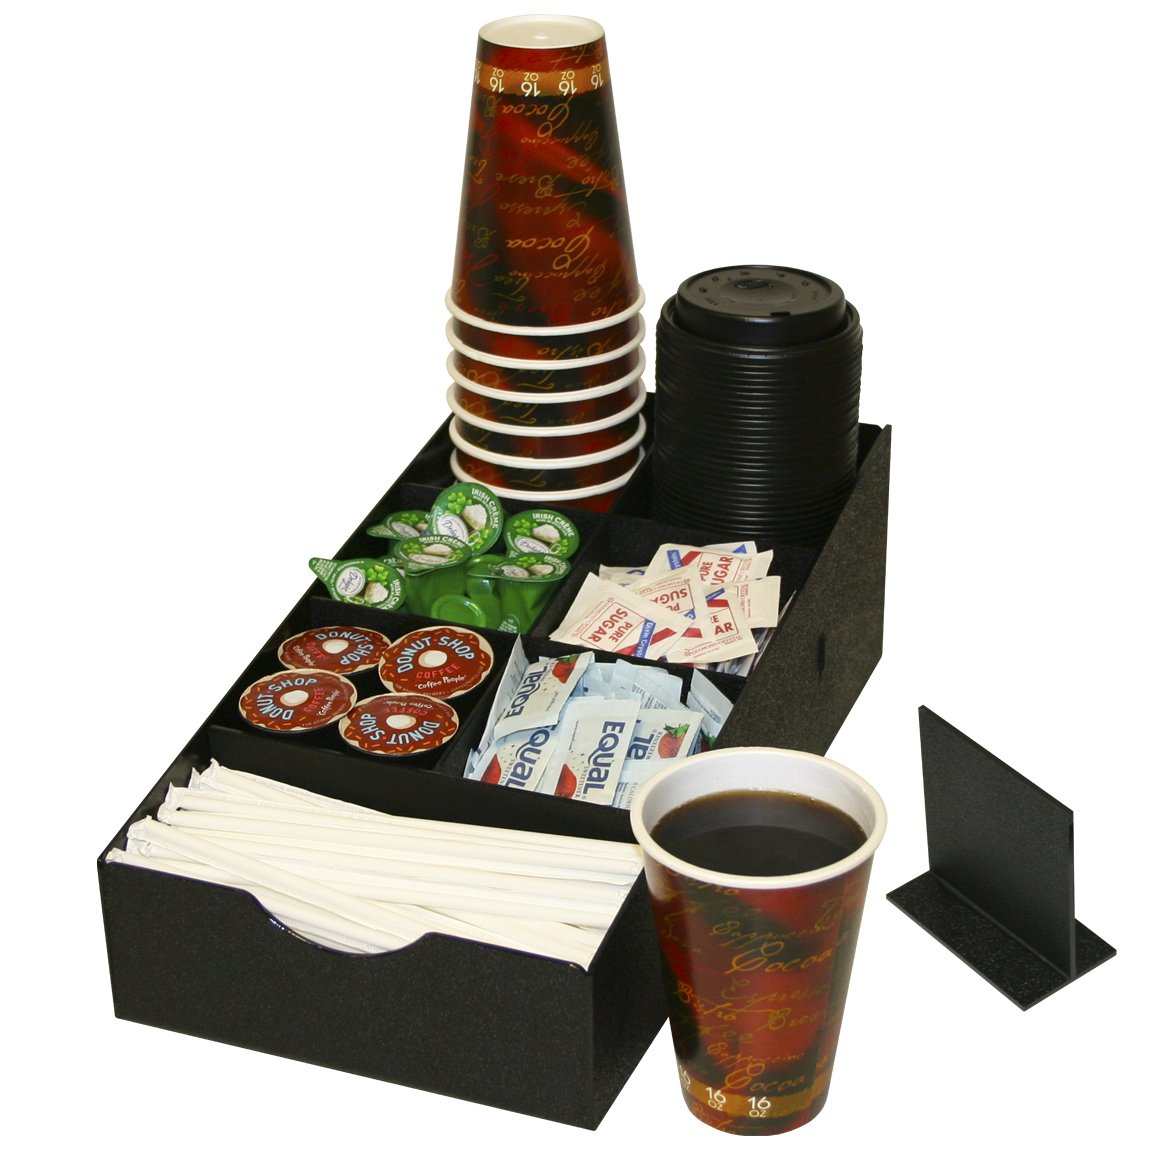 8 Compartment Condiment Organizer. Comes With 1 Extra Movable Divider. 81/2'' Wide x 16''D. Made in the USA by PPM.